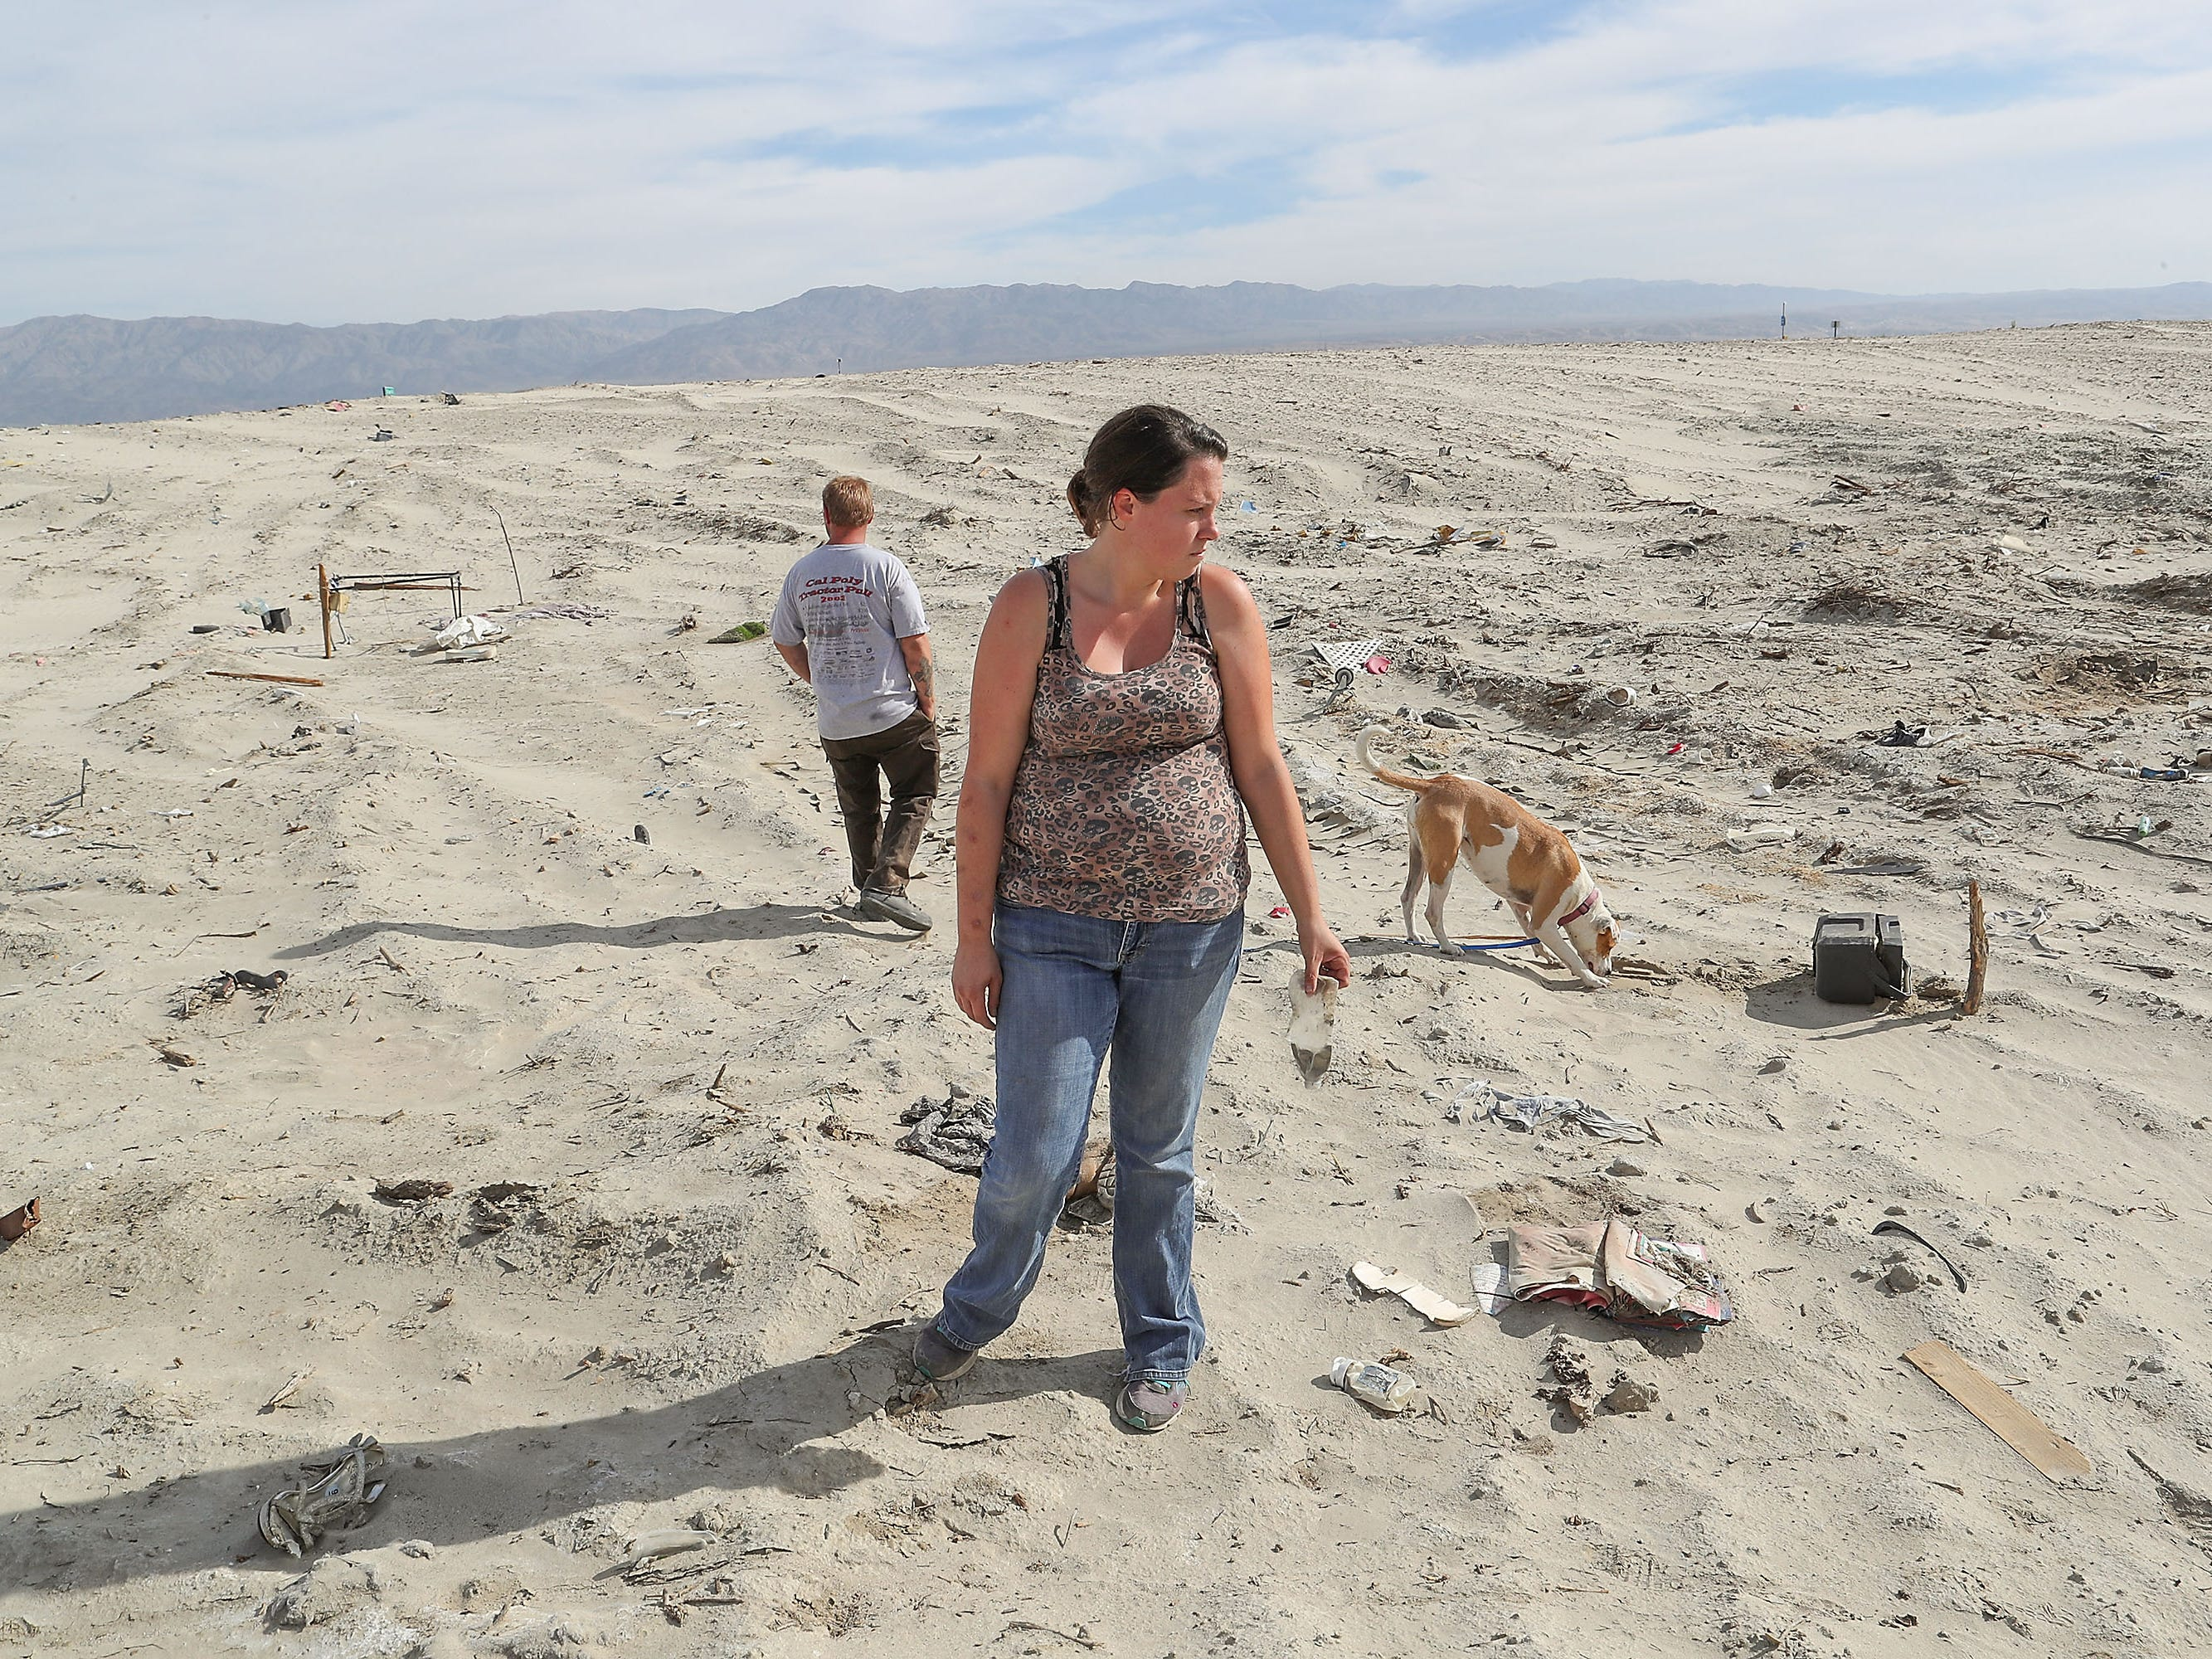 In October 2018, Bryan Hensley and Carene Riale return to the site where they previously lived in Coachella before Caltrans razed their community in May 2018. Broken pieces of wood and debris were buried under the sand.